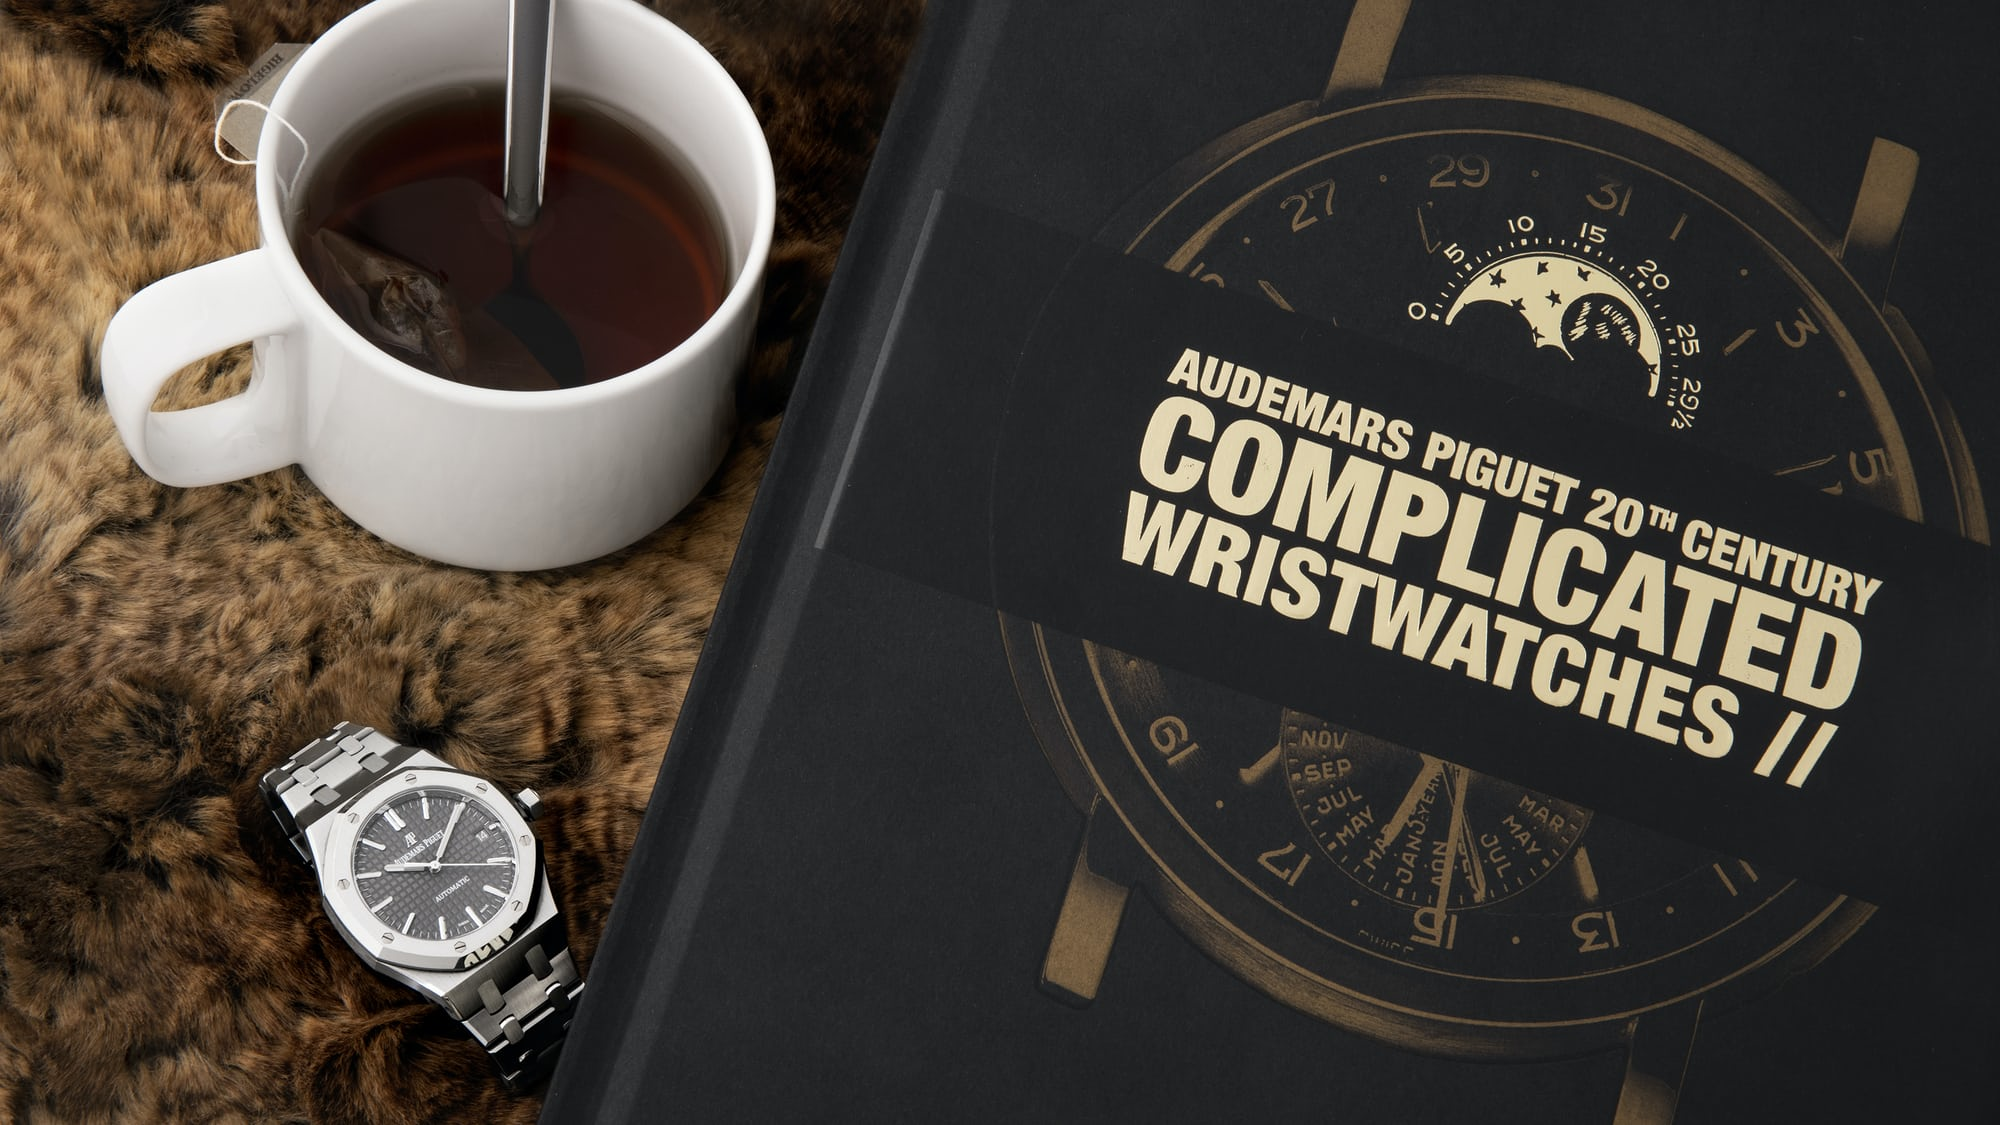 Recommended Reading: Audemars Piguet 20th Century Complicated Wristwatches